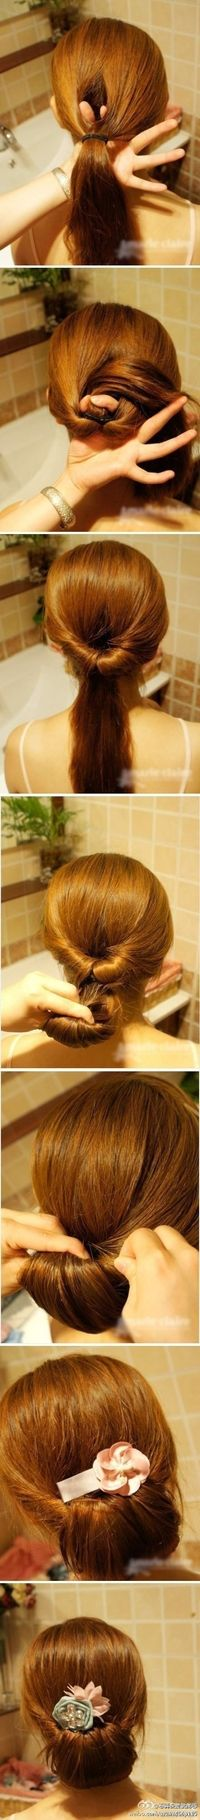 inverted ponytail bun